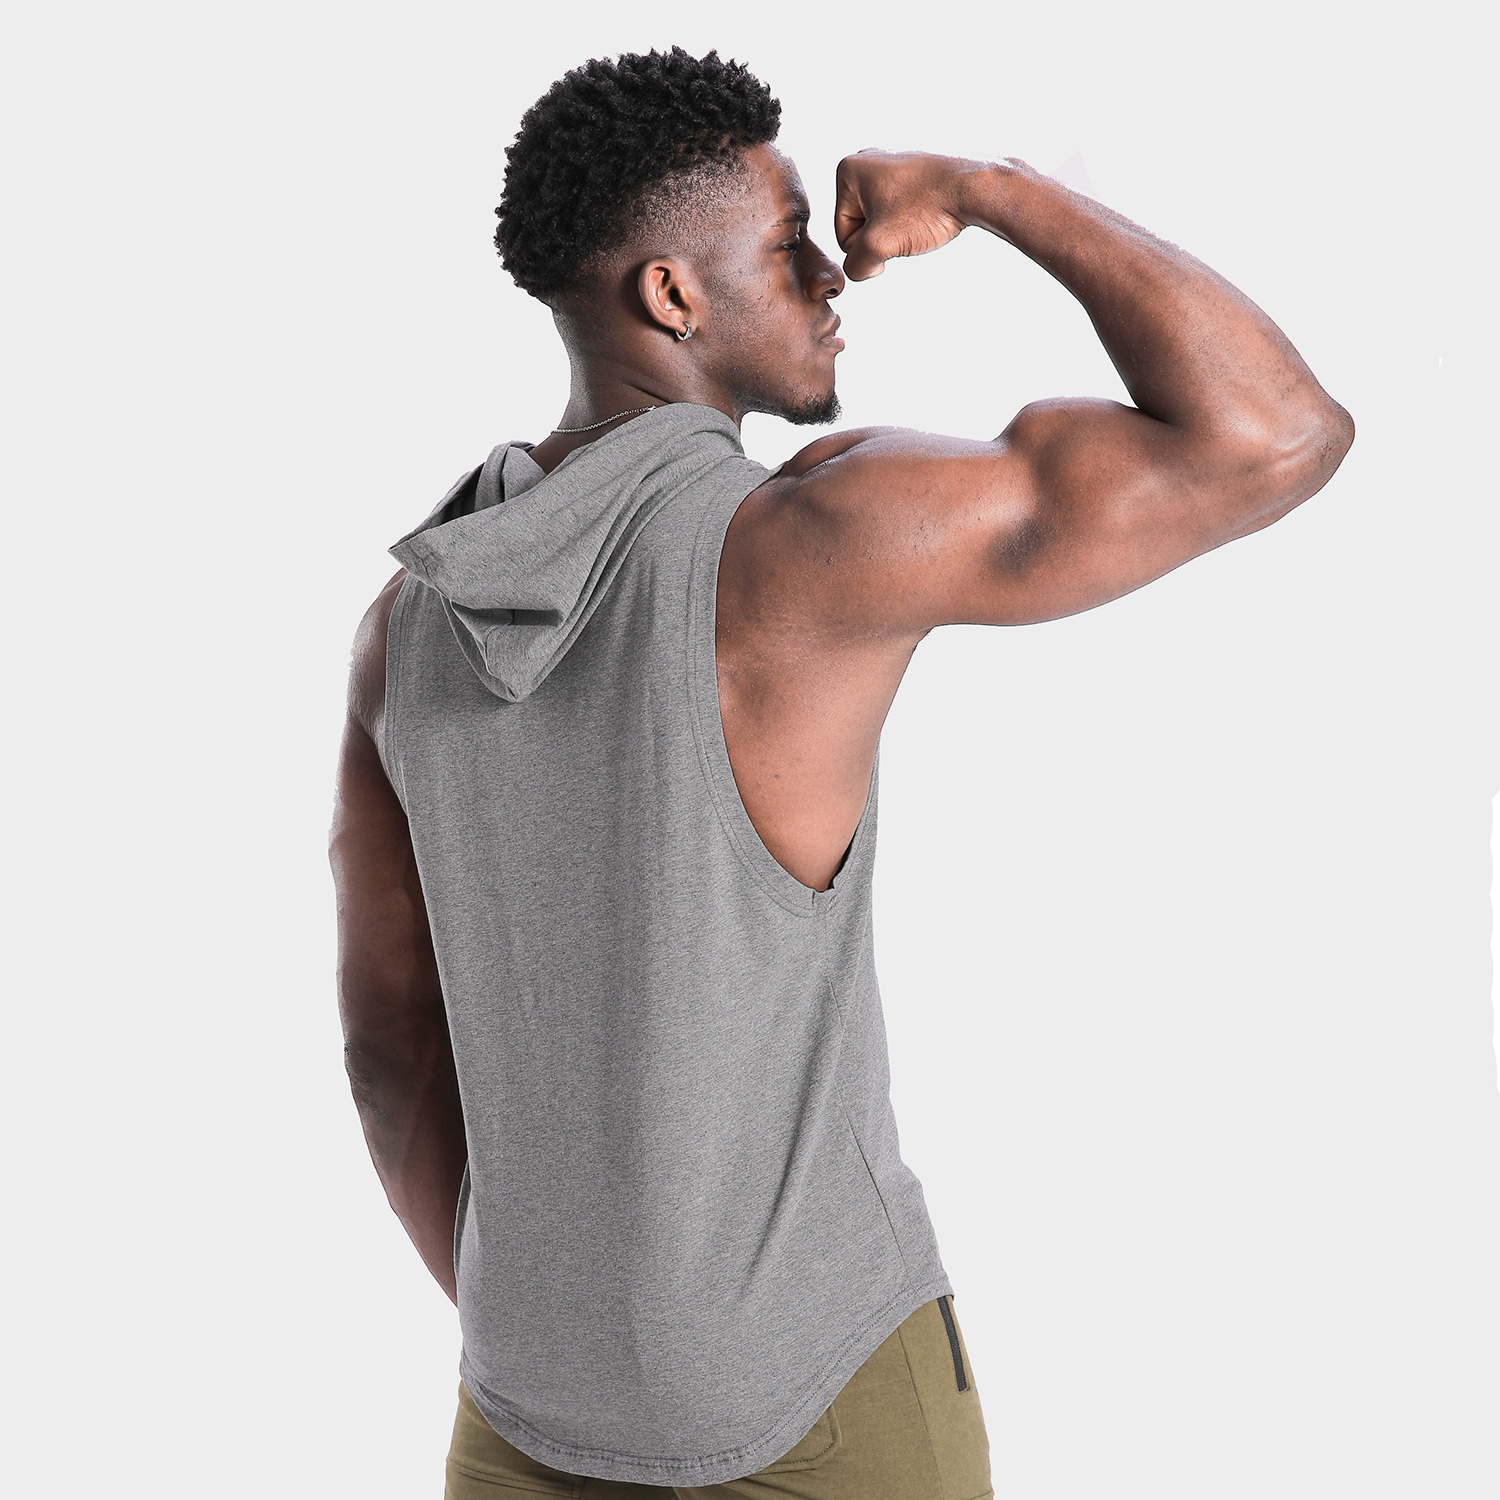 Mens hooded tight casual sports T-shirt fitness cantilevered short sleeve summer new basketball running vest top